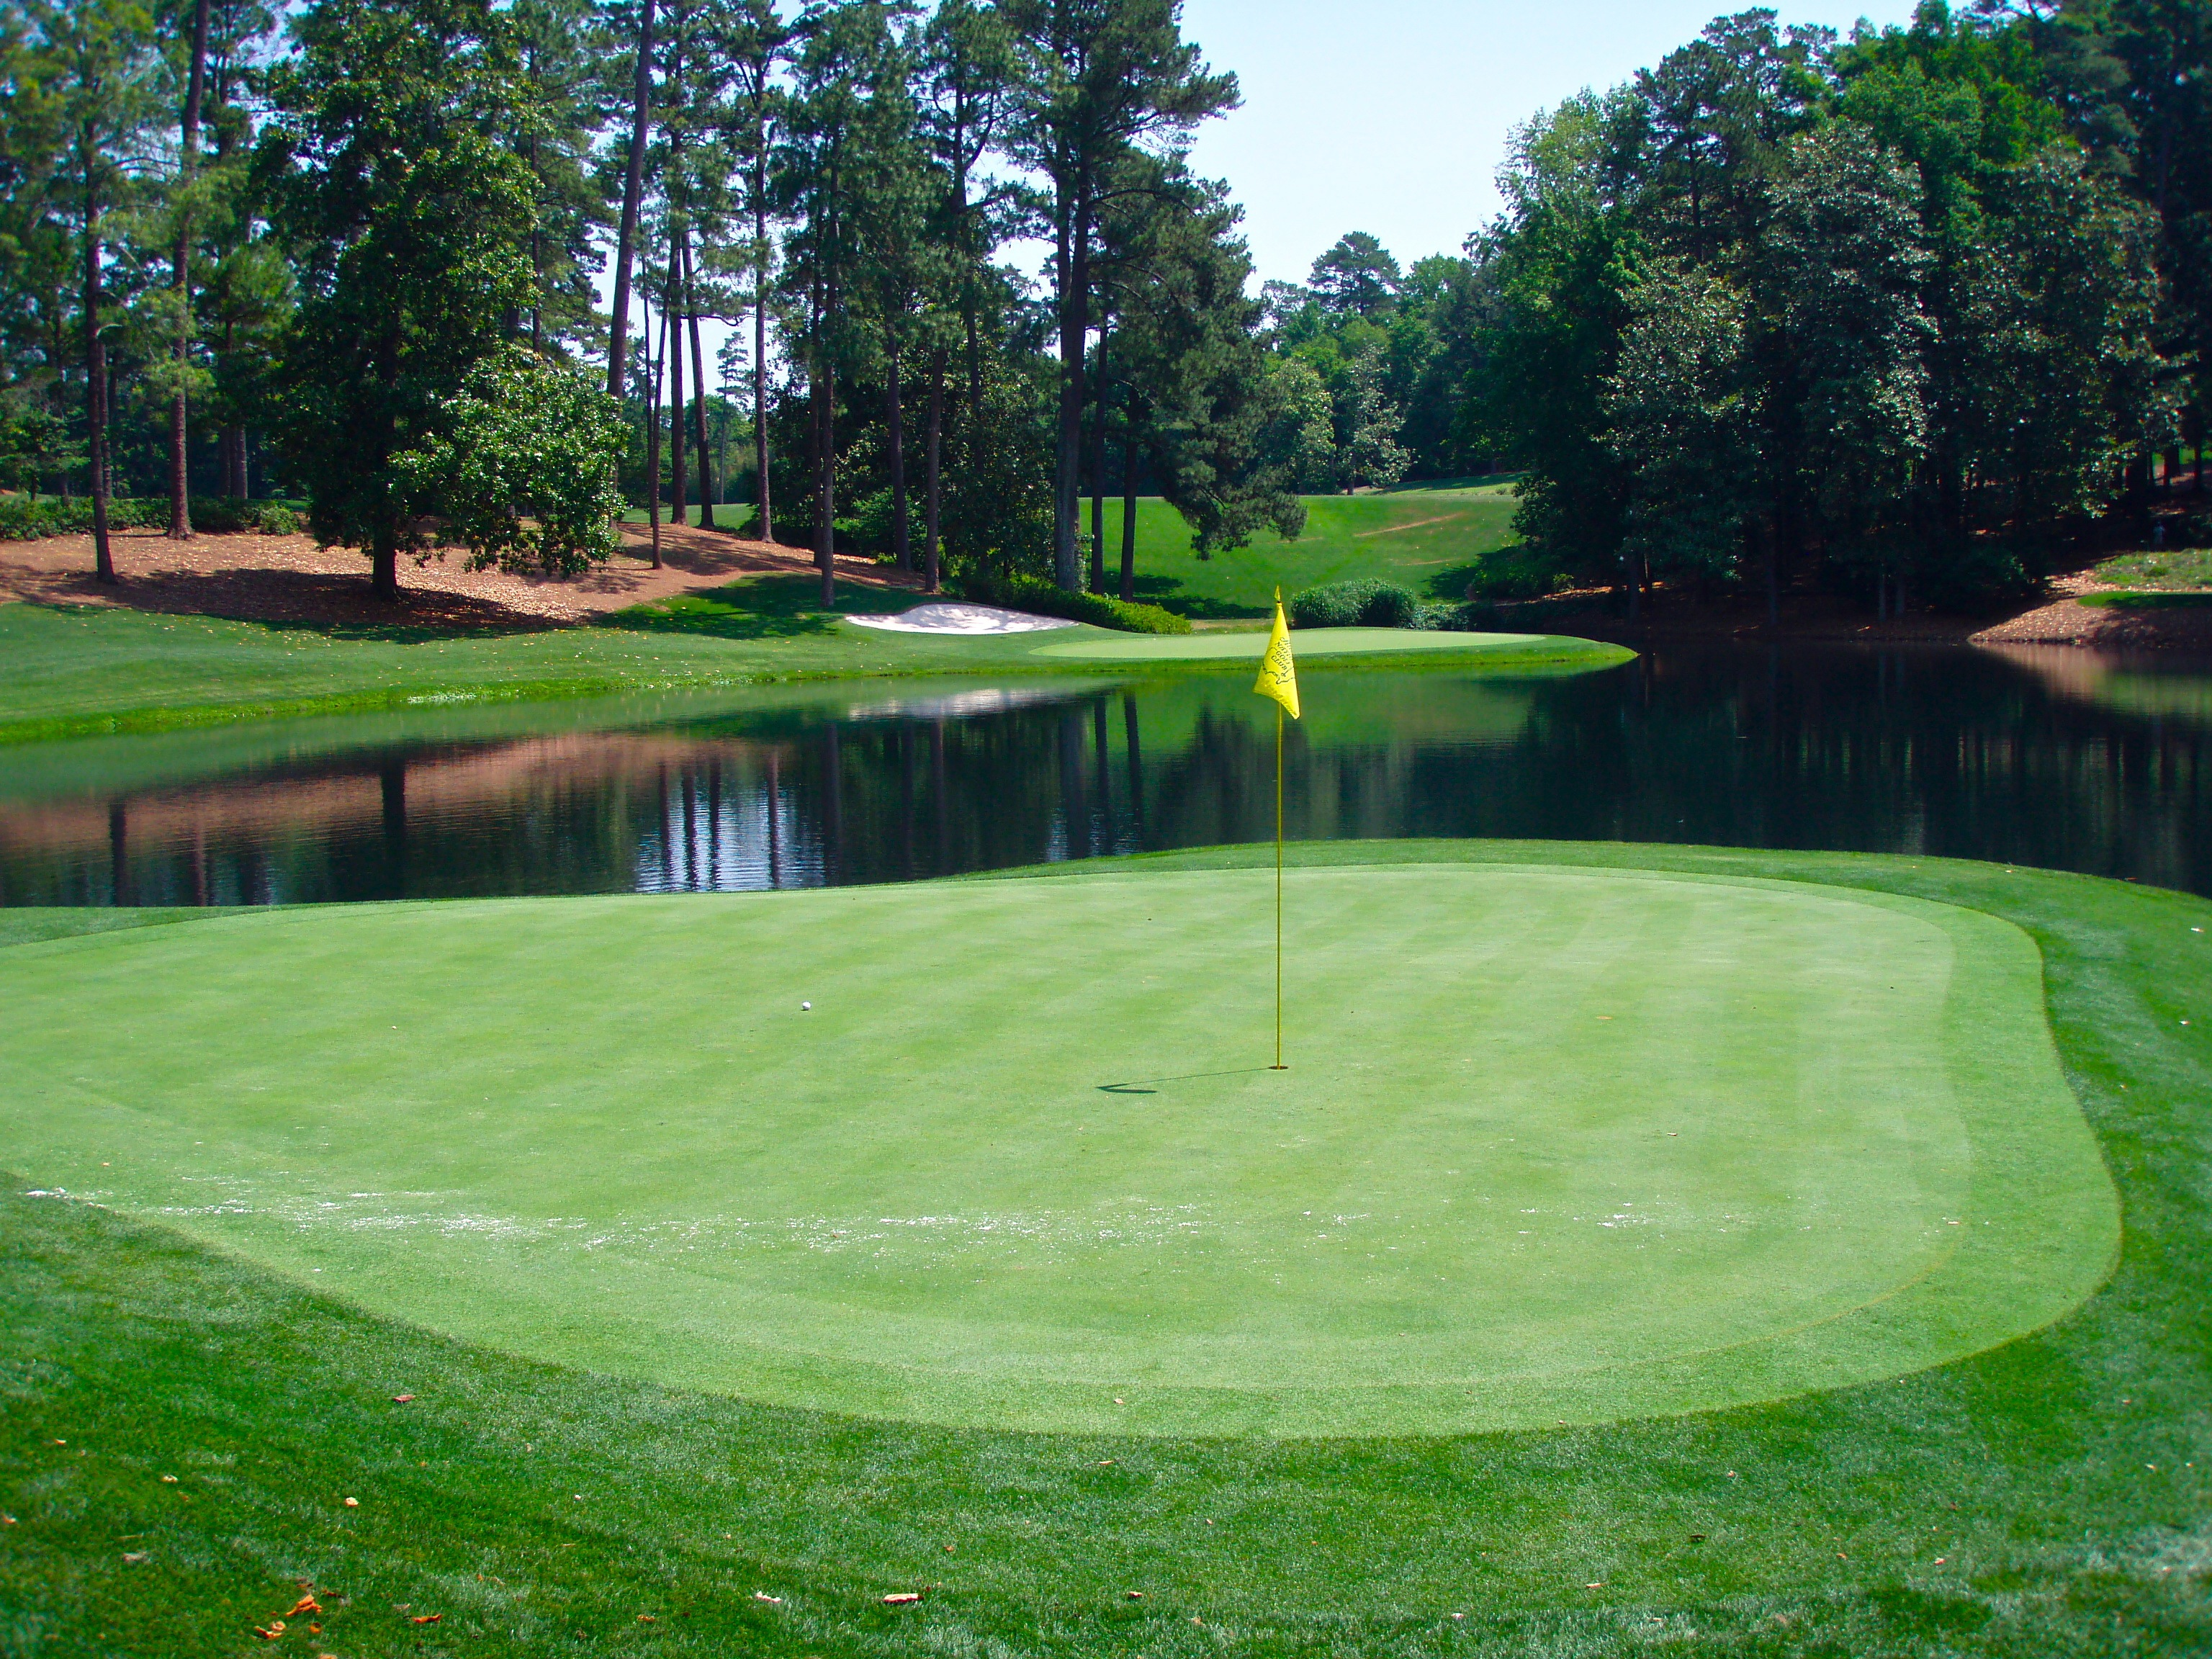 download augusta golf course wallpaper pictures 60728